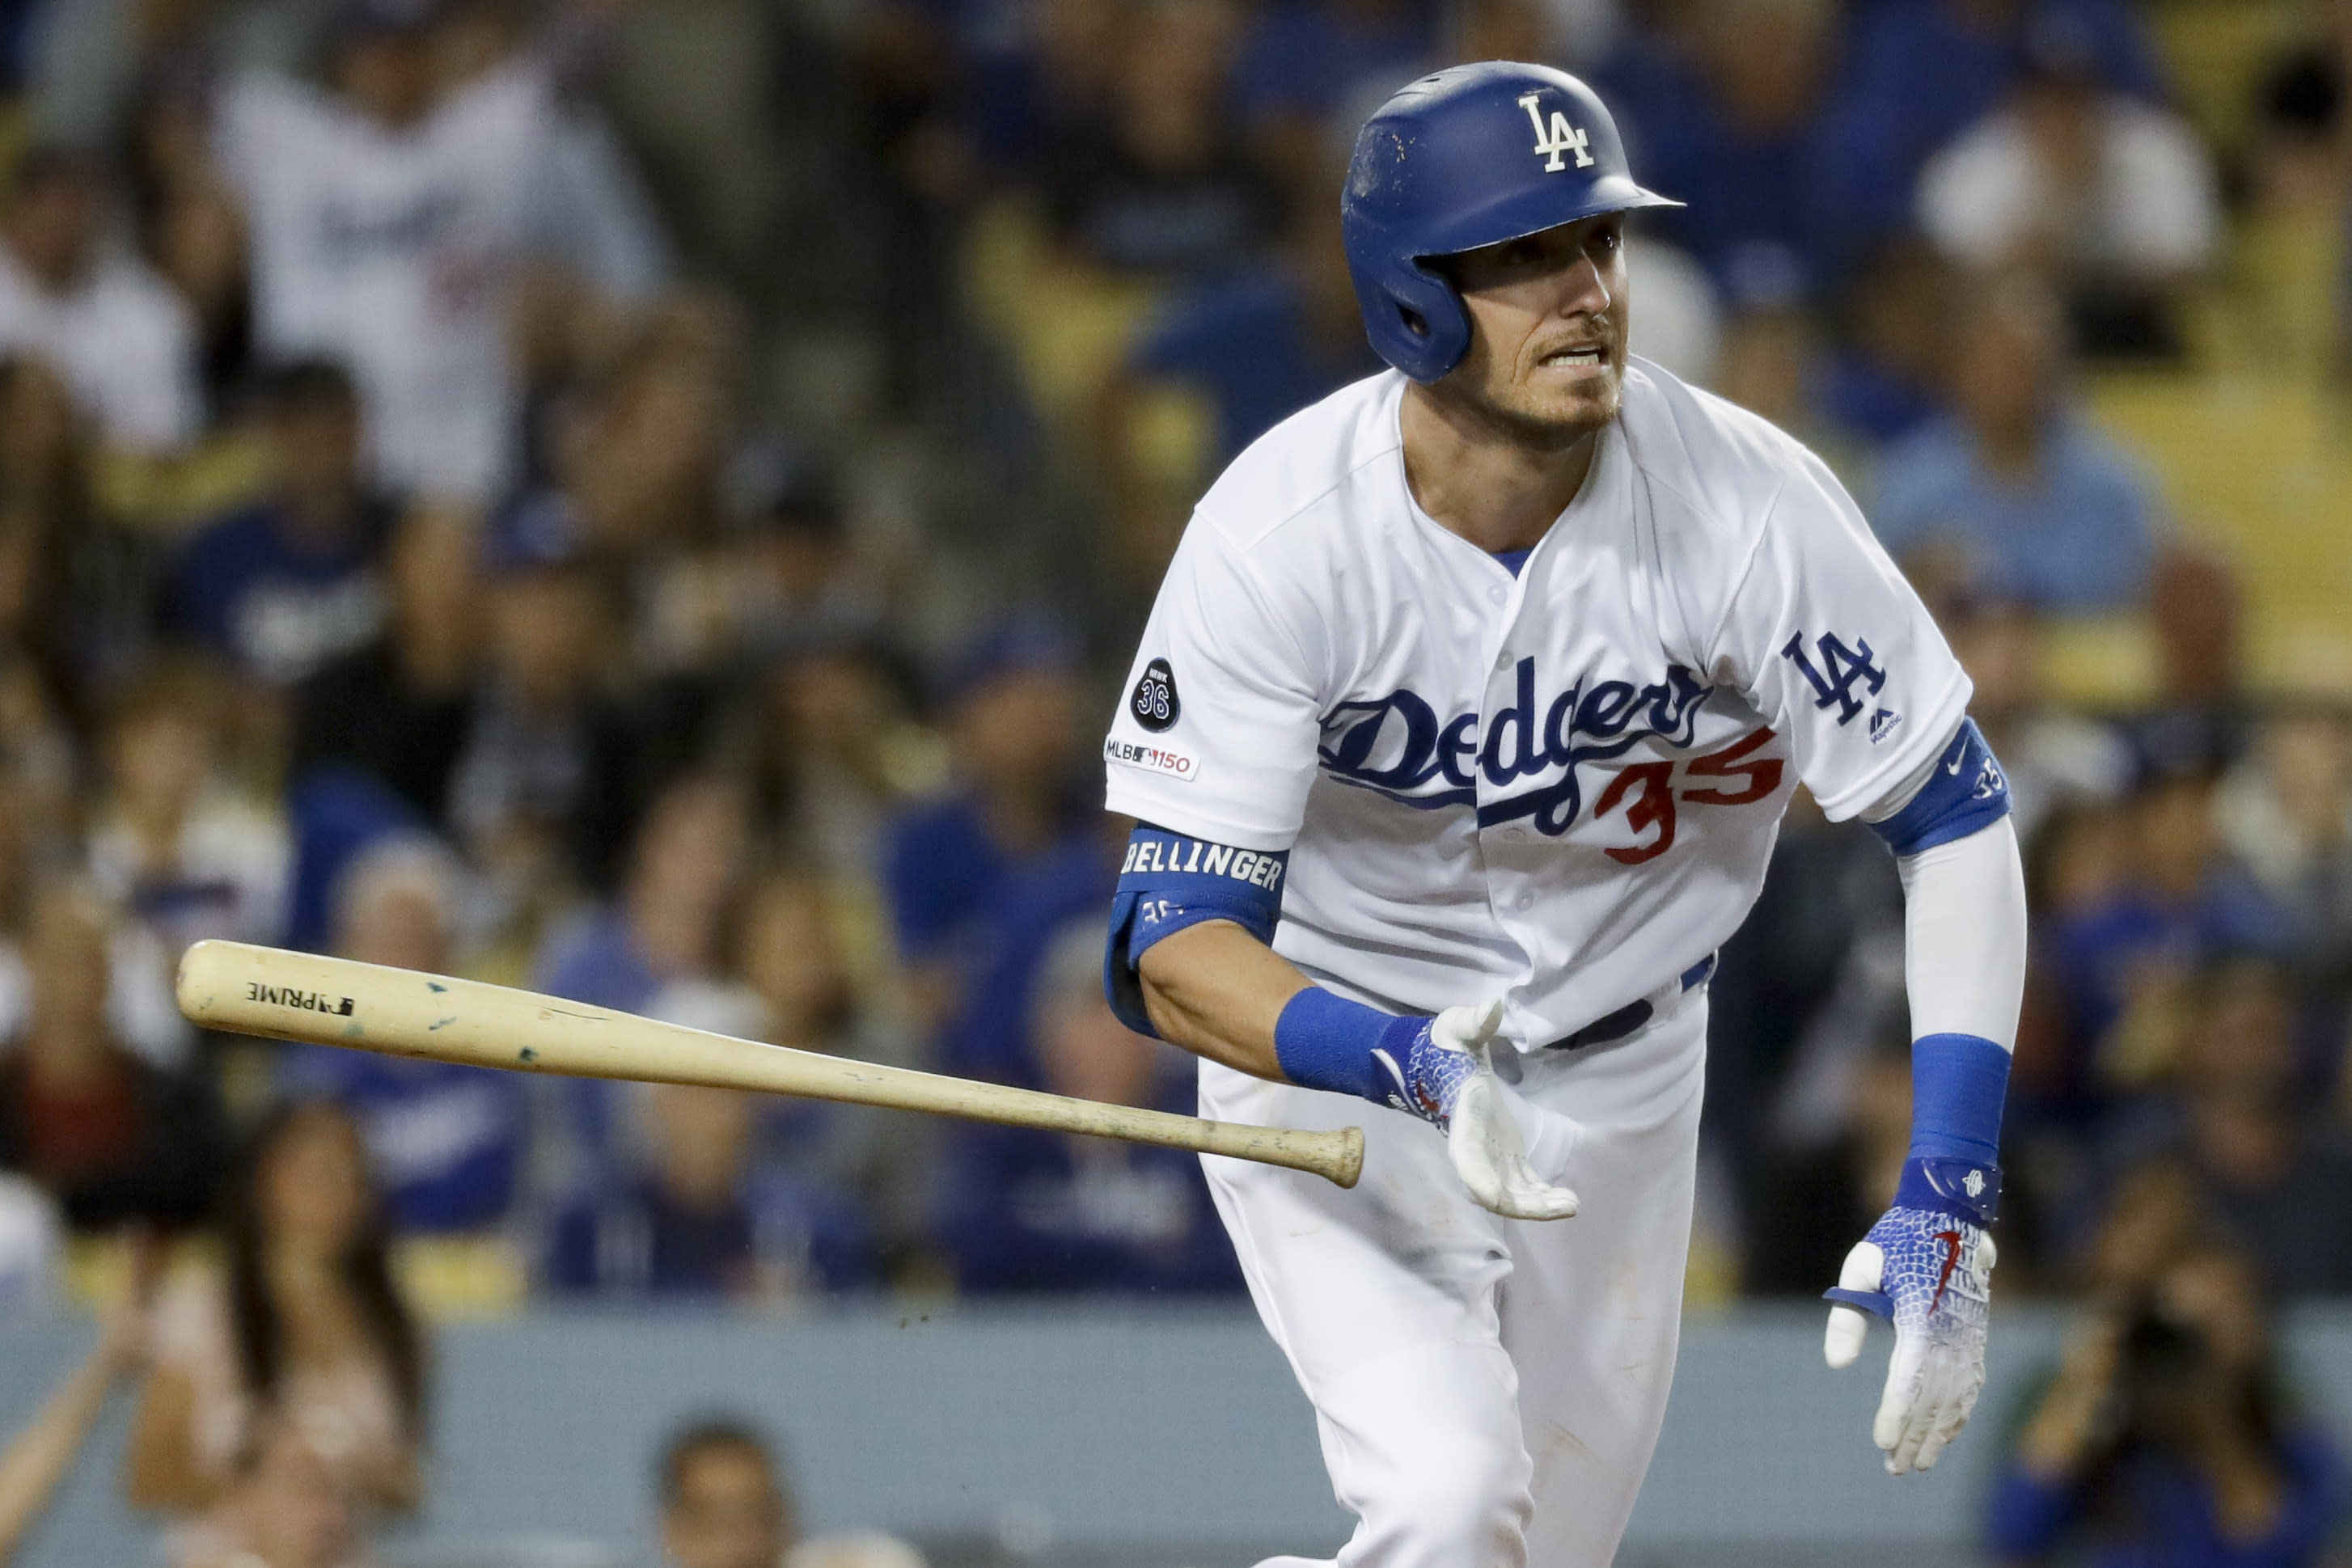 Your NL MVP: Cody Bellinger | Dodger slugger highlights and EMOTIONAL interview 12